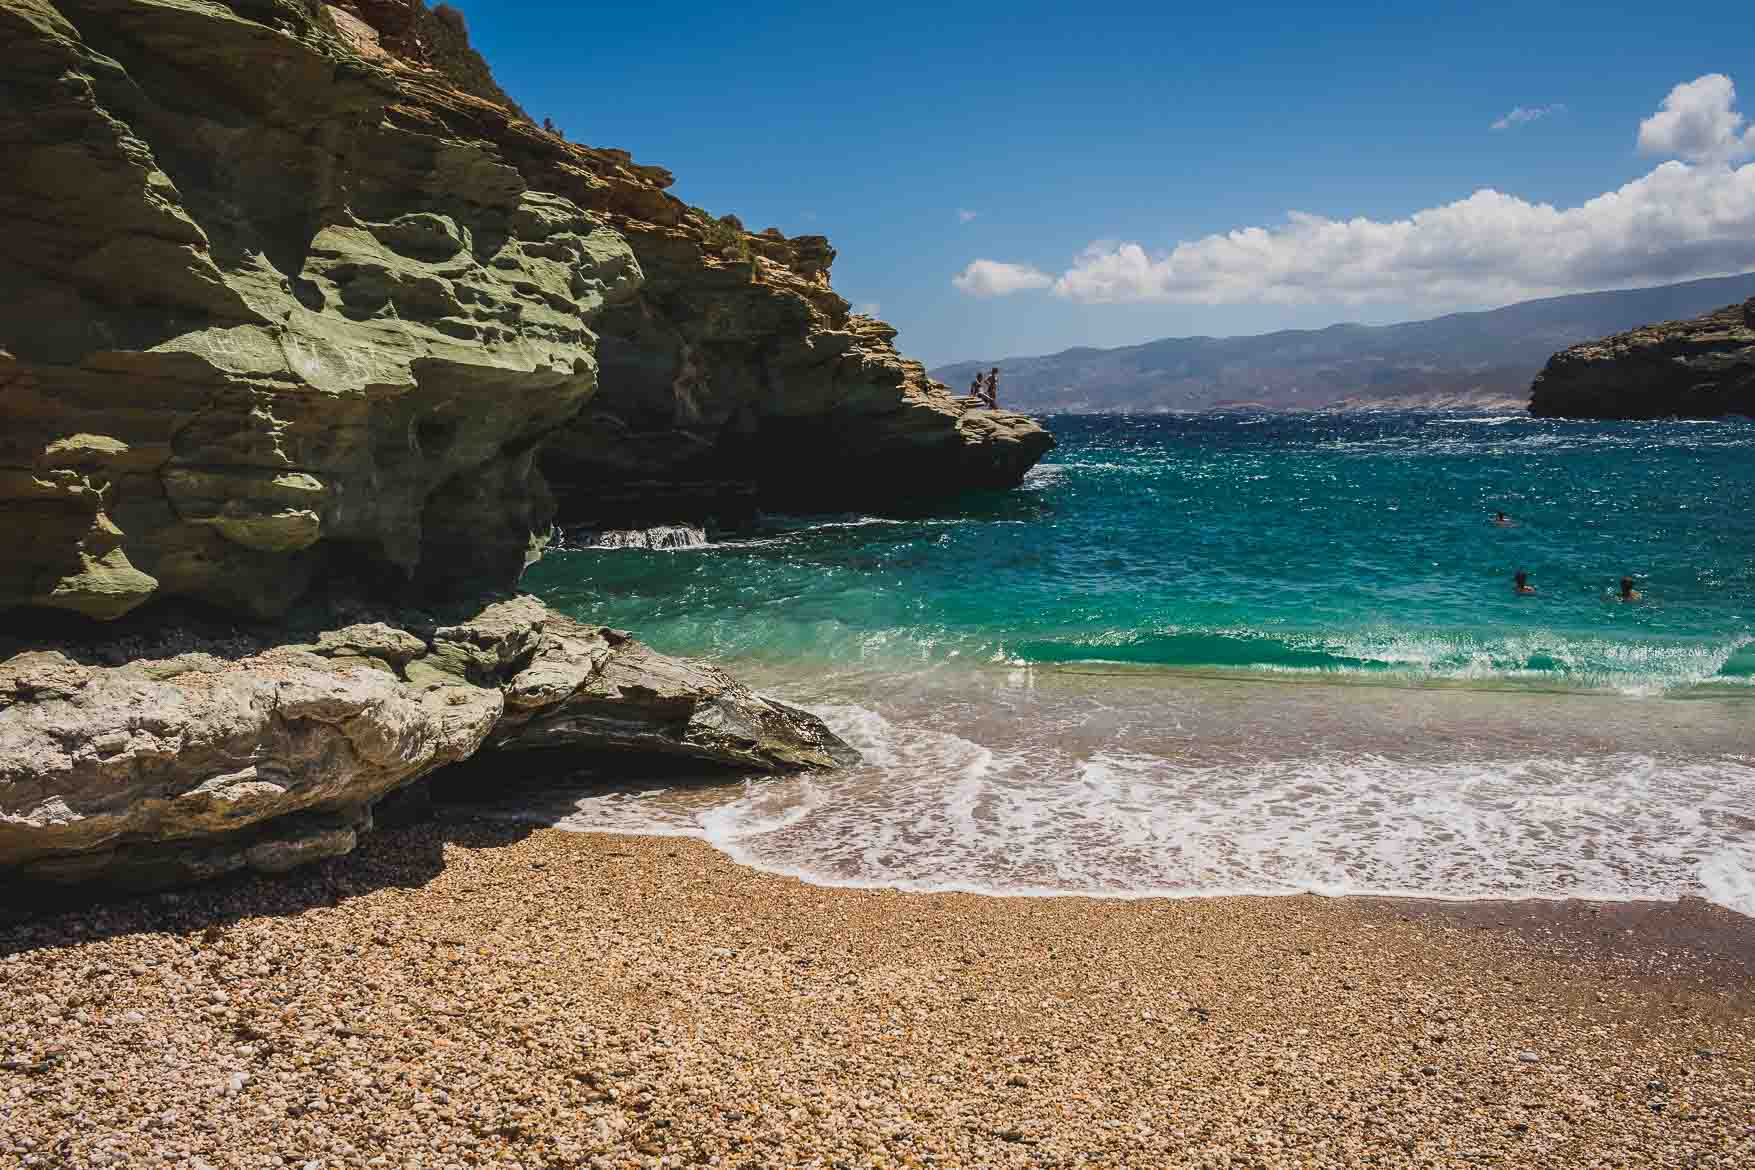 This photo shows beautiful, remote Vitali beach on Andros island, Cyclades, Greece. Andros Routes offer everyone unique hiking opportunities on one of the most beautiful greek islands.